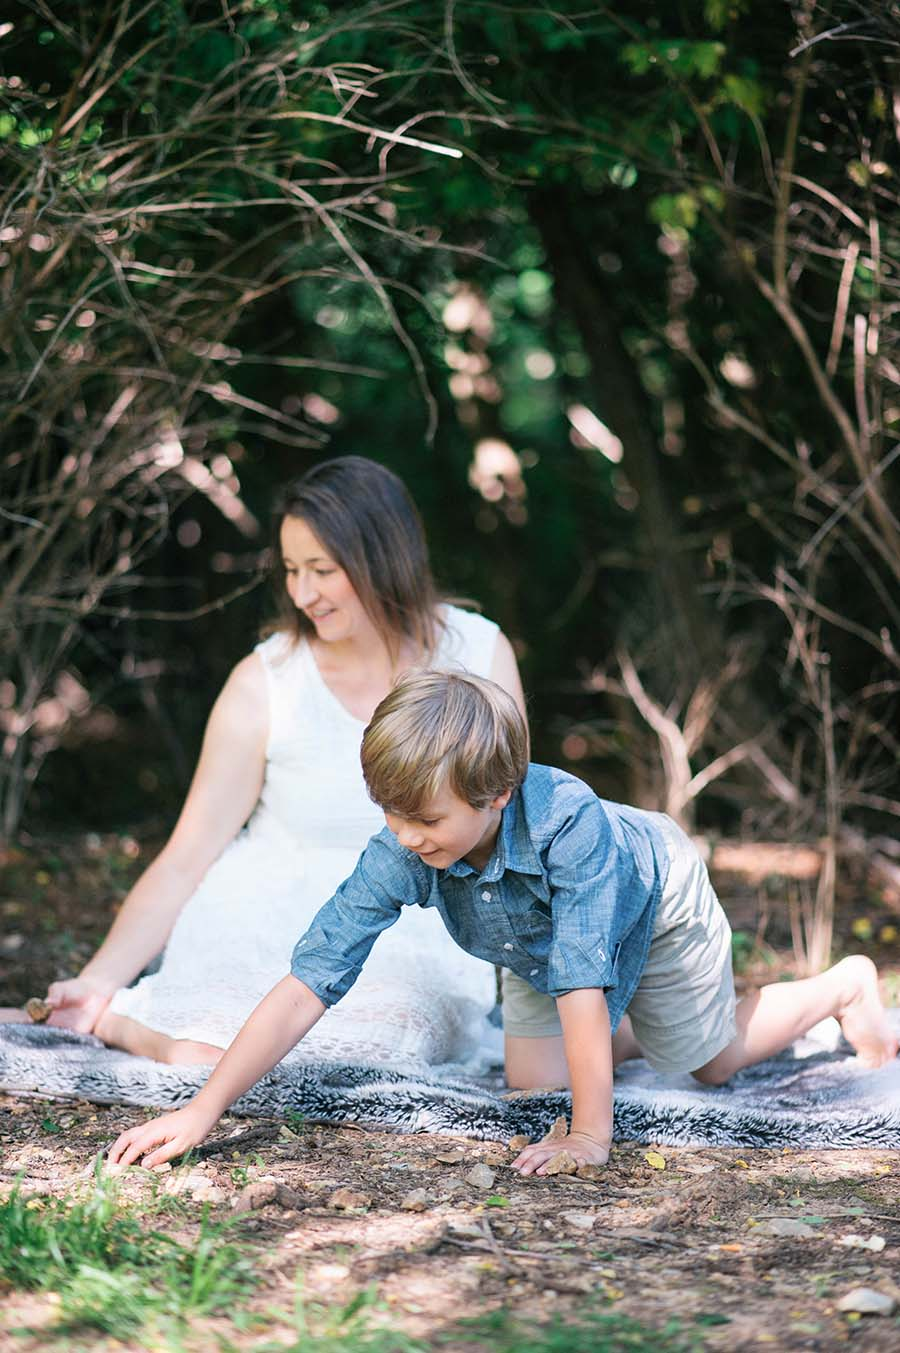 blog_Mothers_Day_Minis_2015_Ember_Session_Sarah_Brewer (34 of 61).jpg